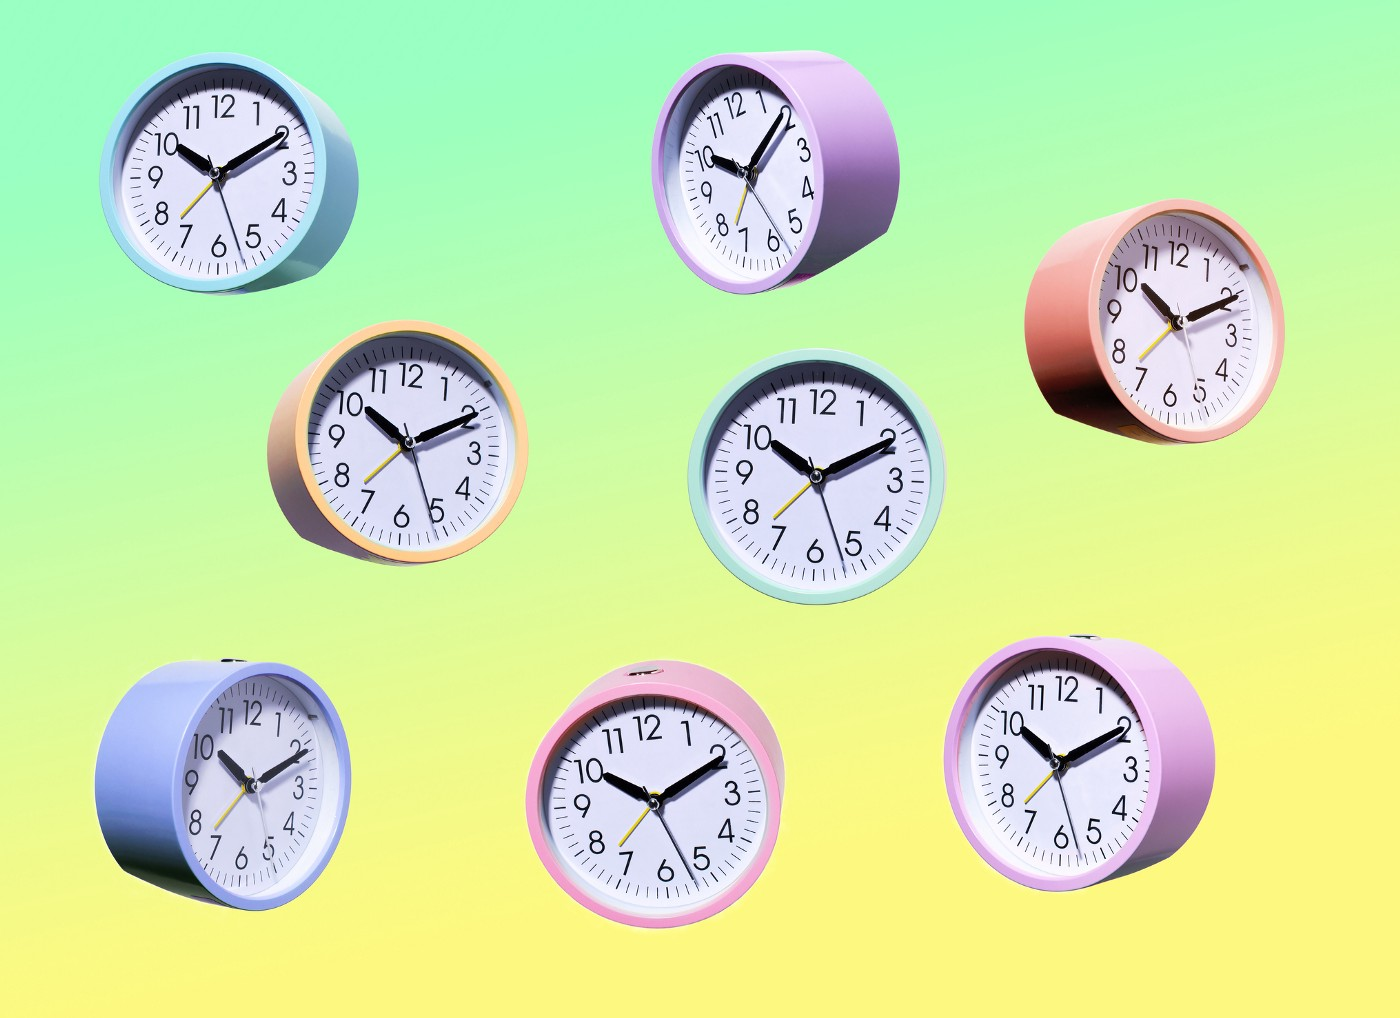 Multicolored clocks falling against a yellow-green gradient.